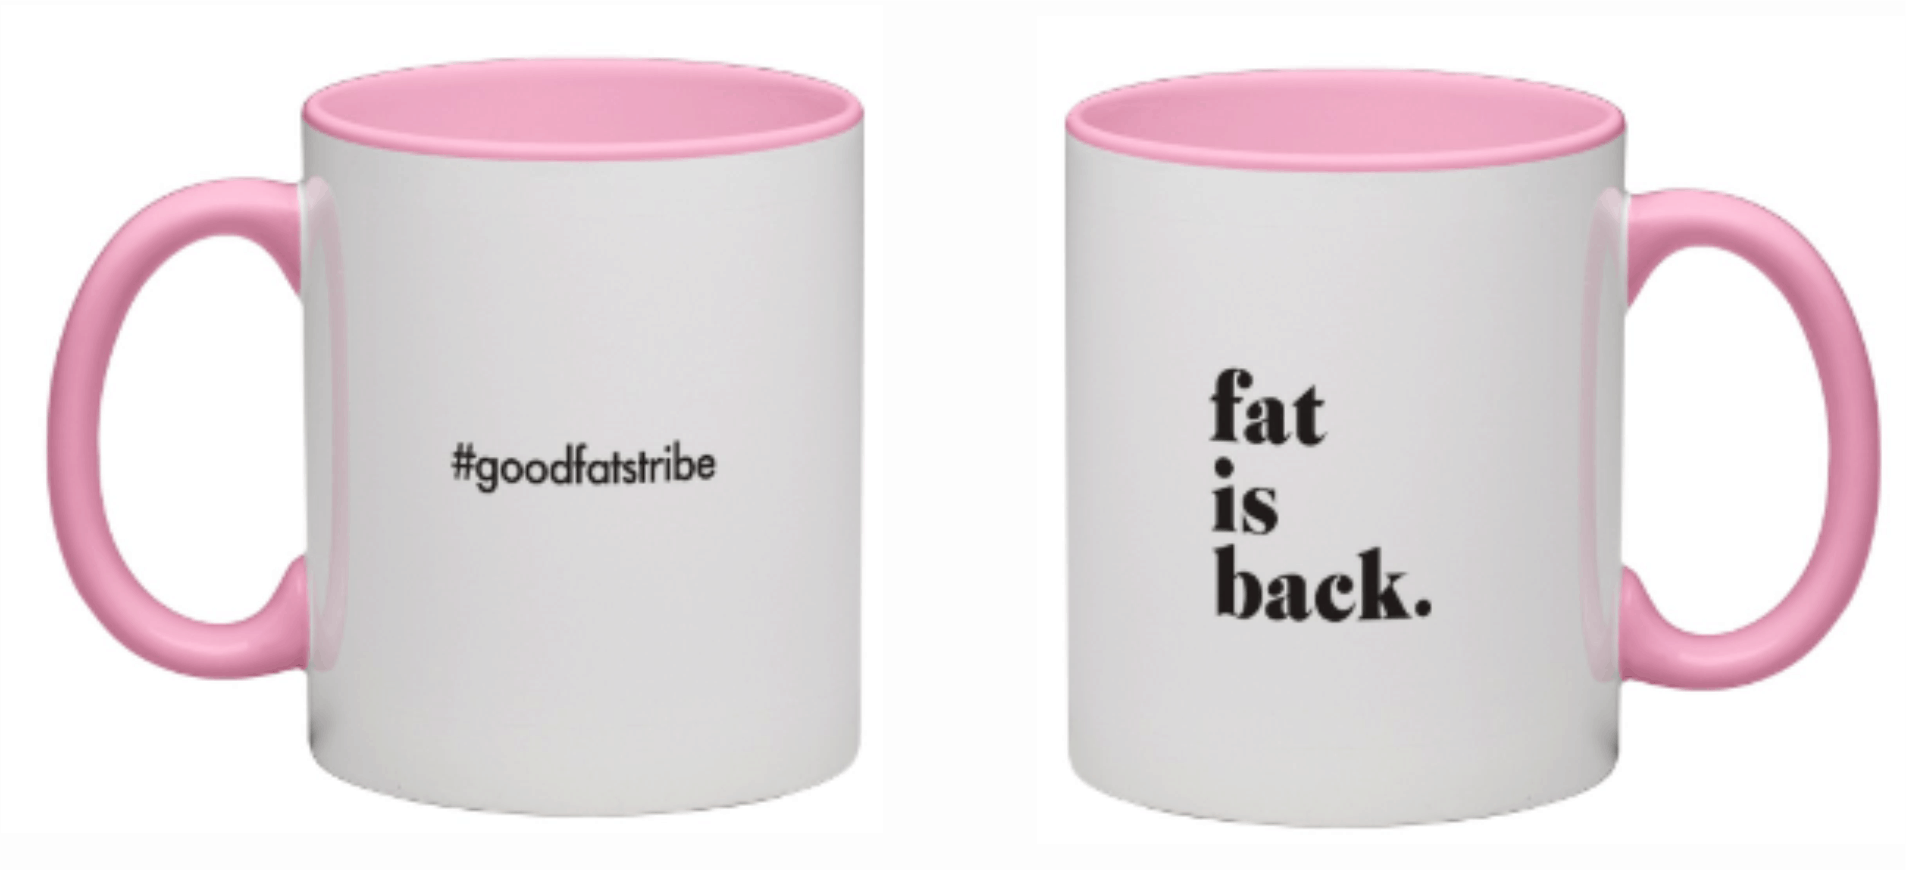 fat is back - Pink Coffee Mug - suziesgoodfats